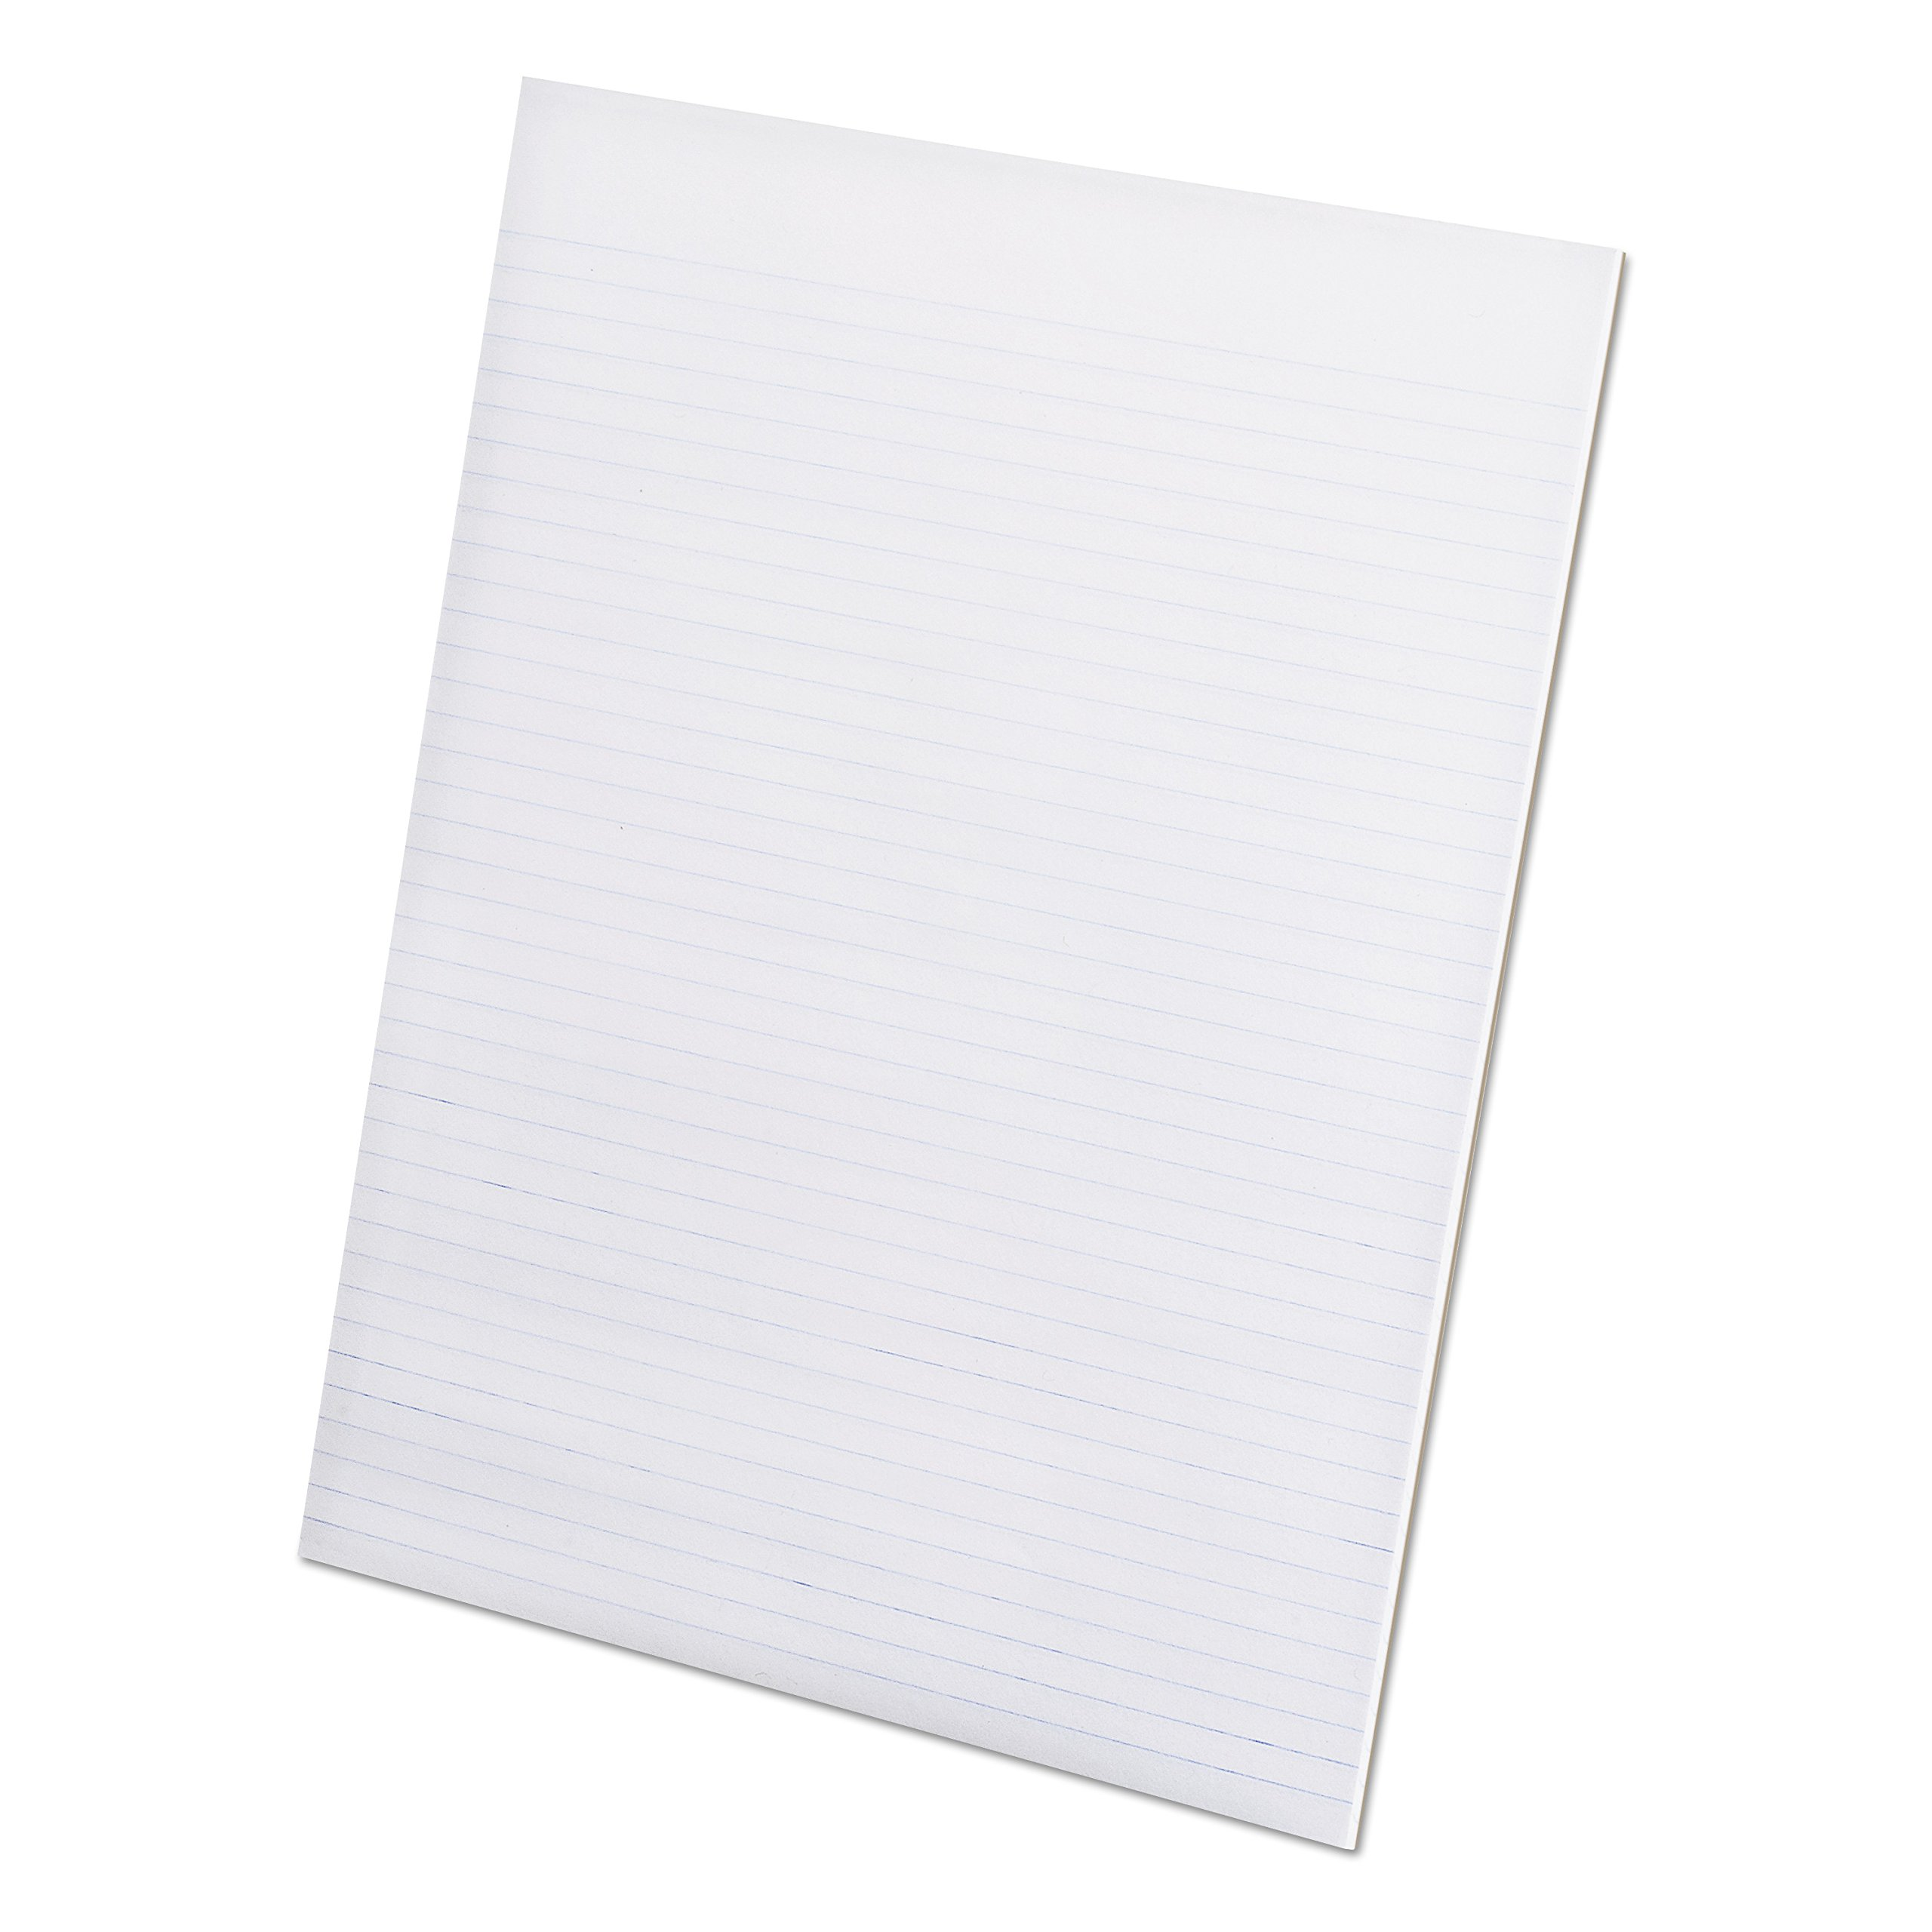 Ampad Evidence Recycled Glue Top 8-1/2 x 11 Pads, Narrow Rule, White, 50 Sheets Per Pad, 12 Pack (21-168) by Ampad